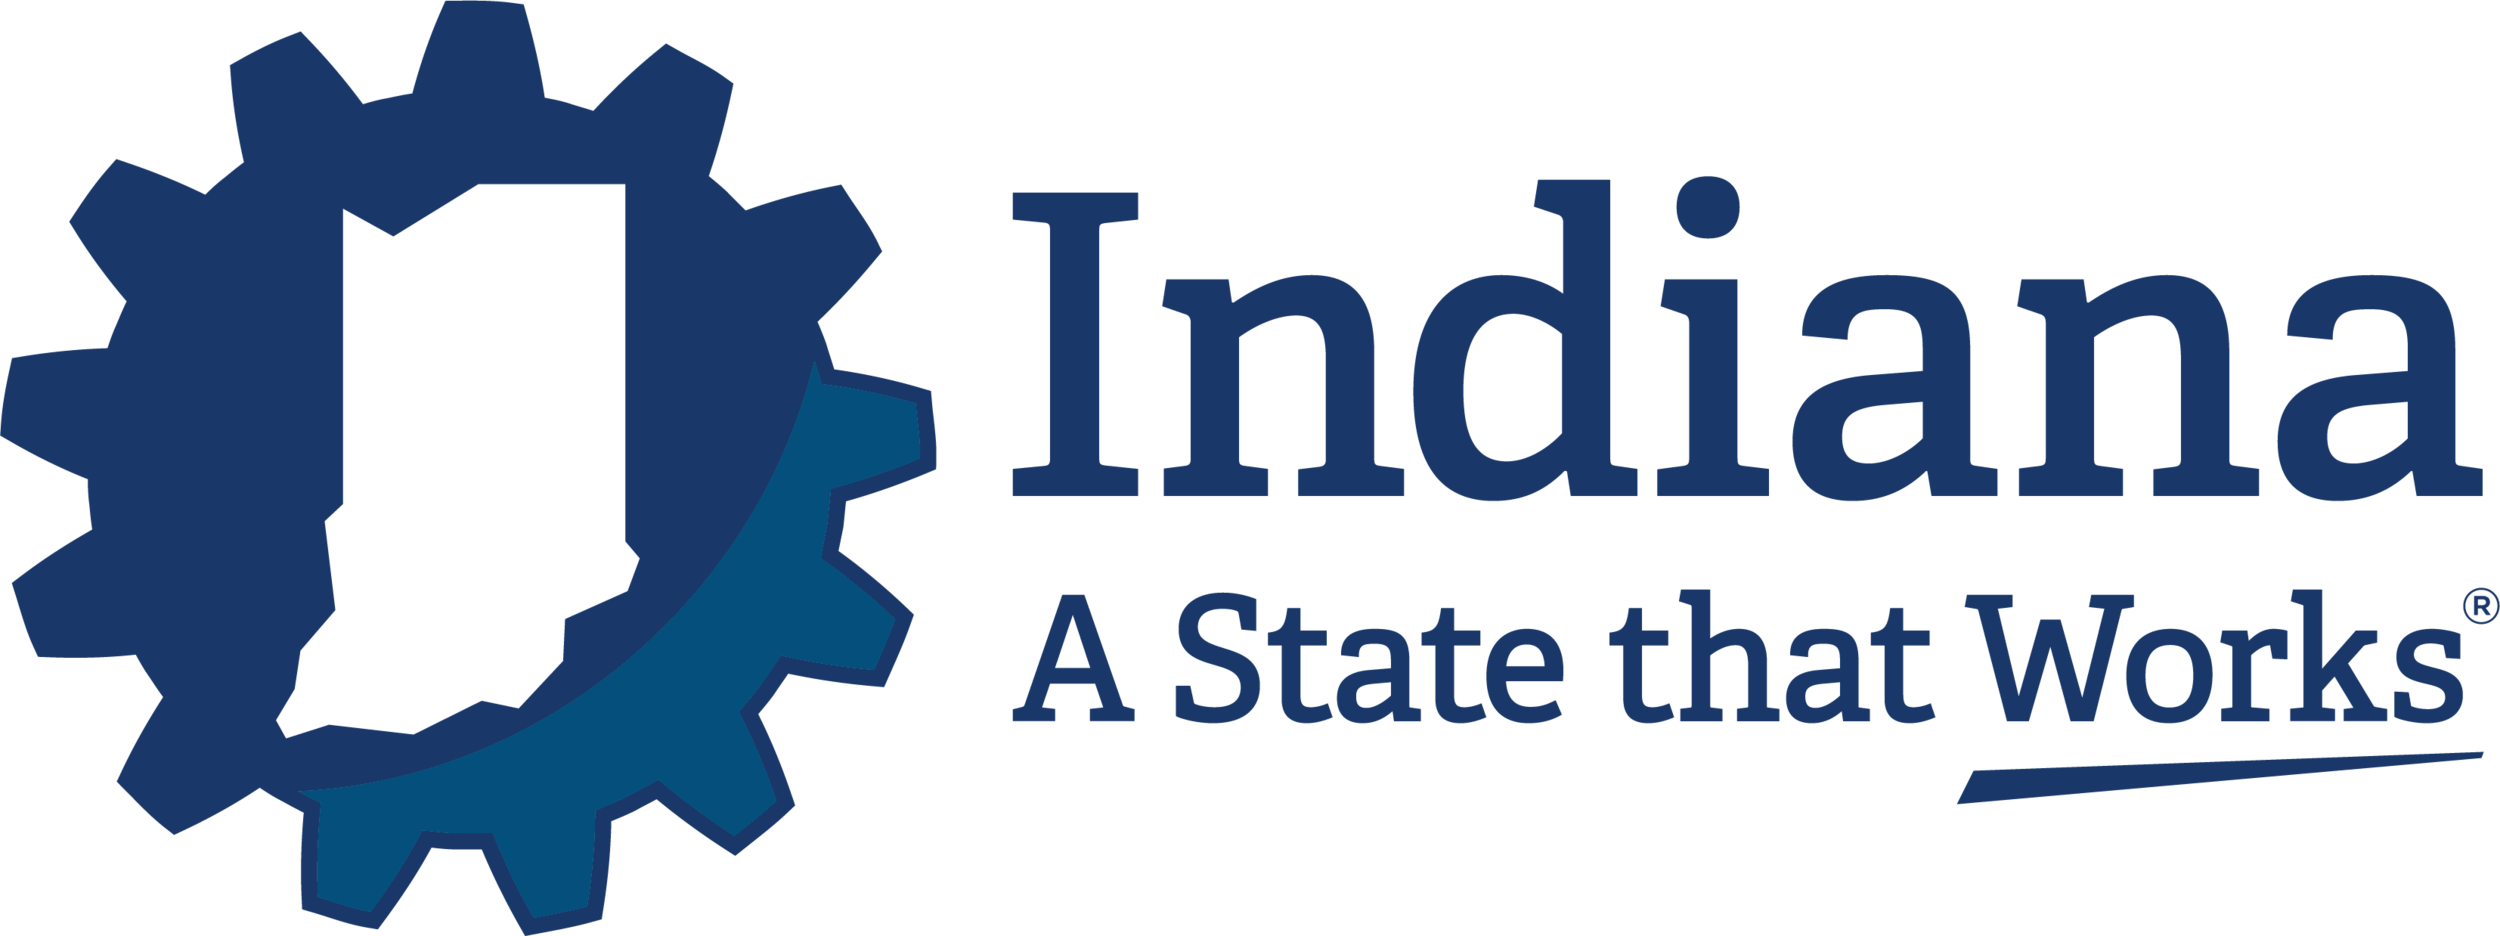 Indiana State Works-Horizontal-Blue.png